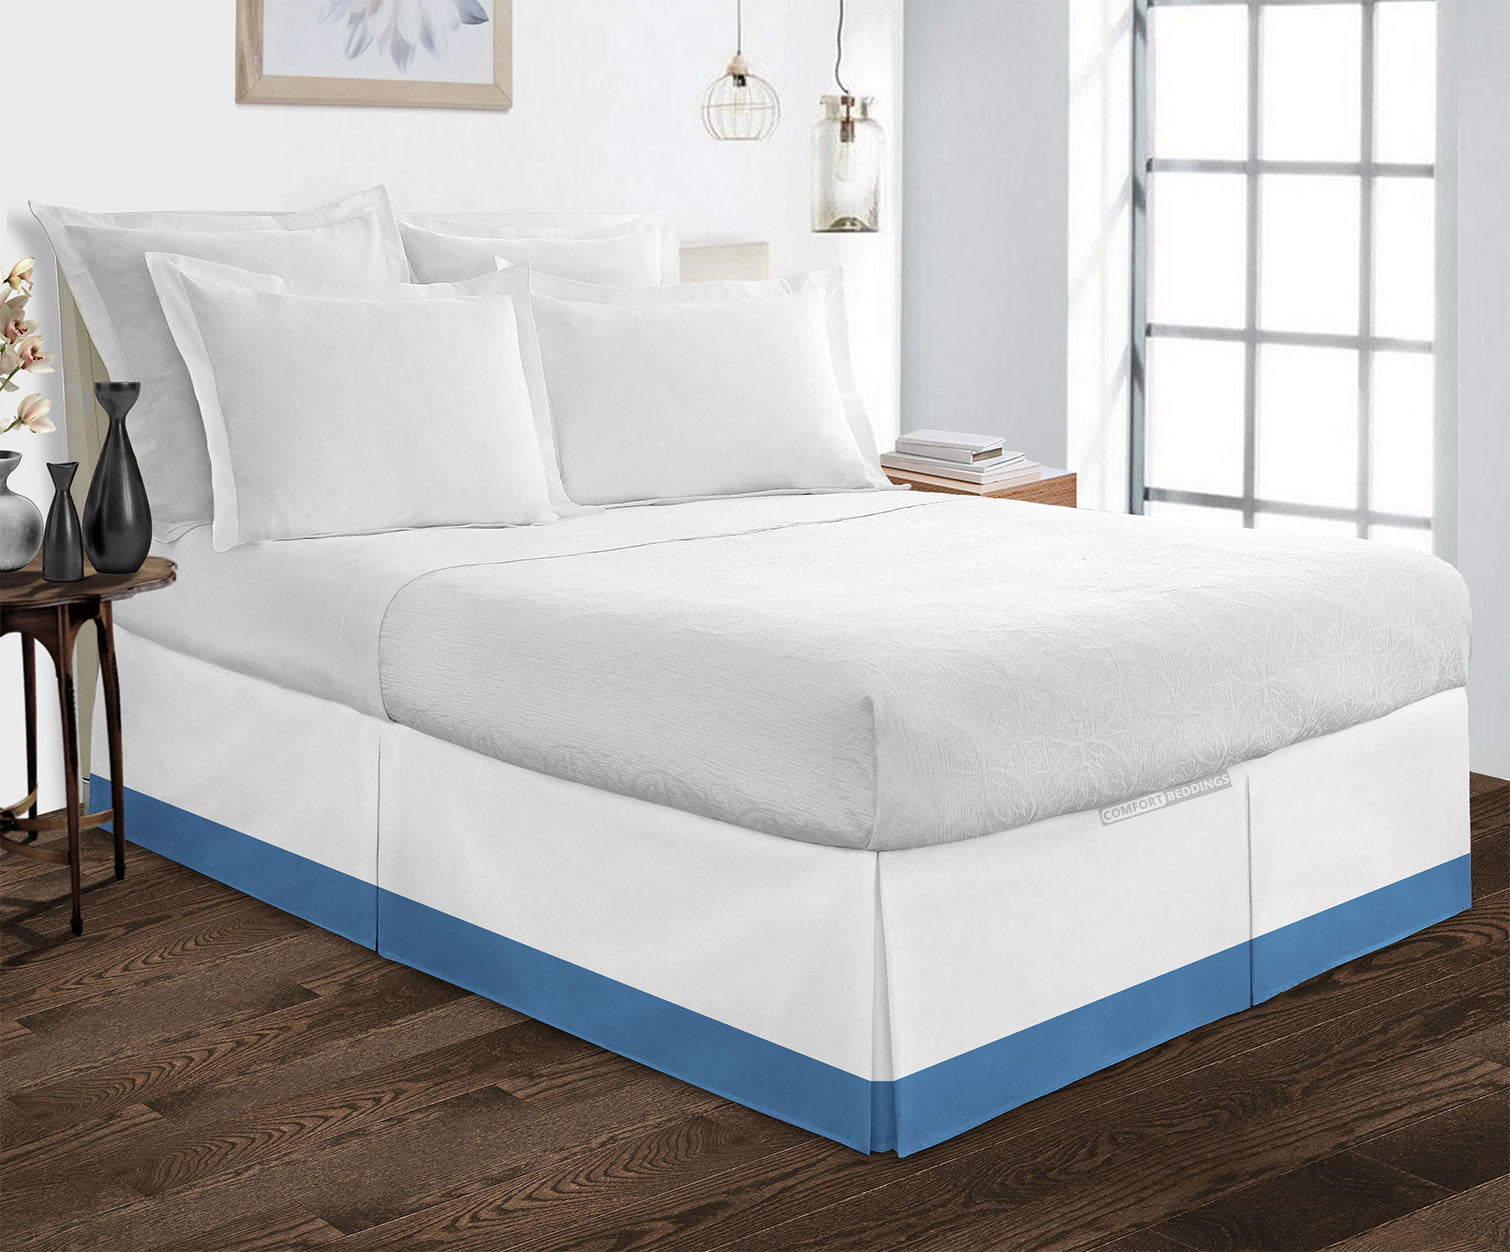 Essential Mediterranean Blue two tone bed skirt